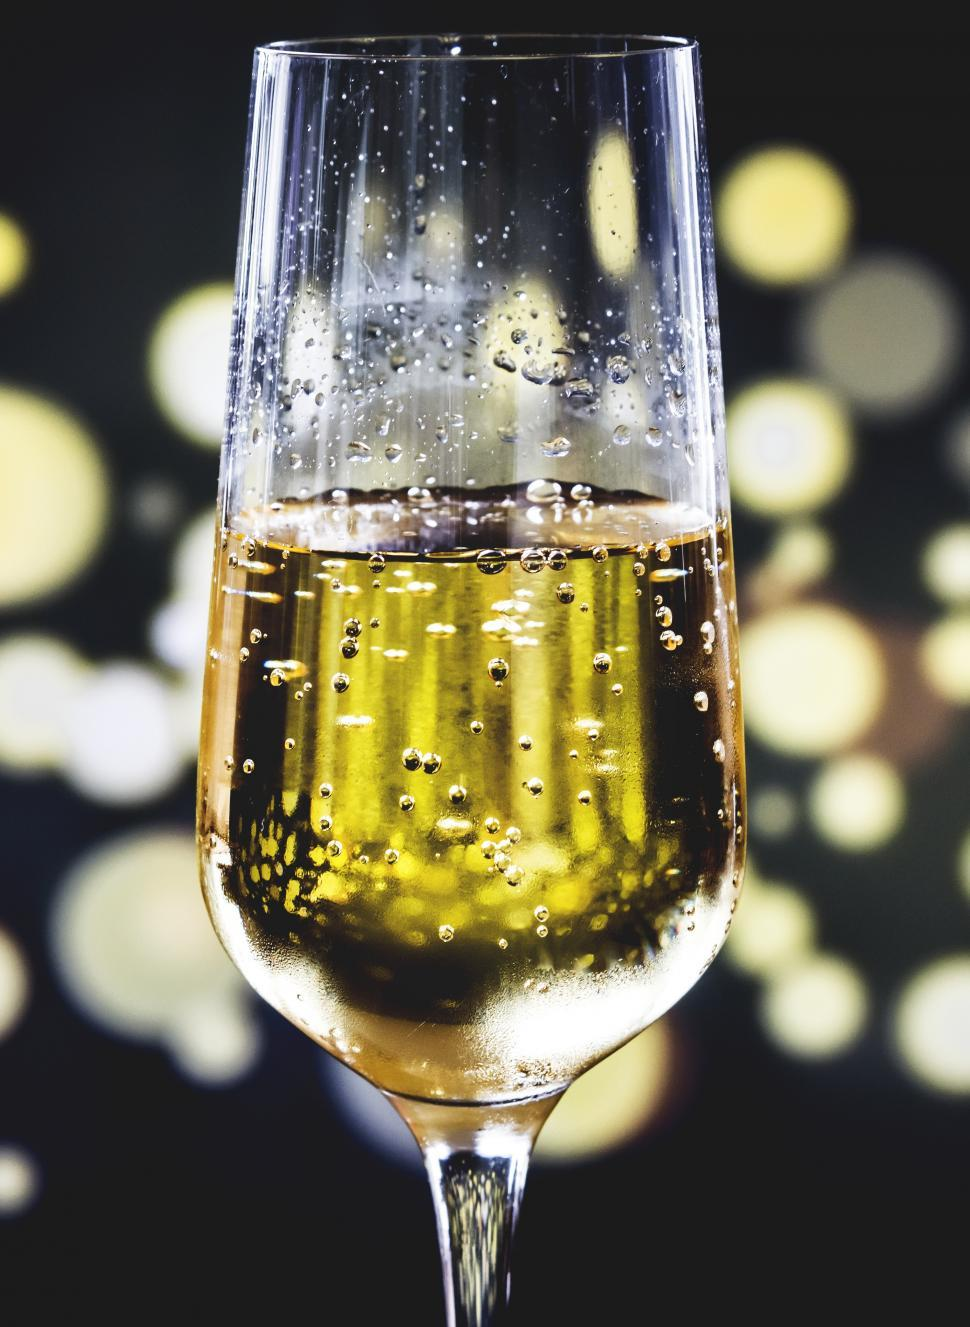 Download Free Stock HD Photo of Close up of a champagne glass and dark background Online